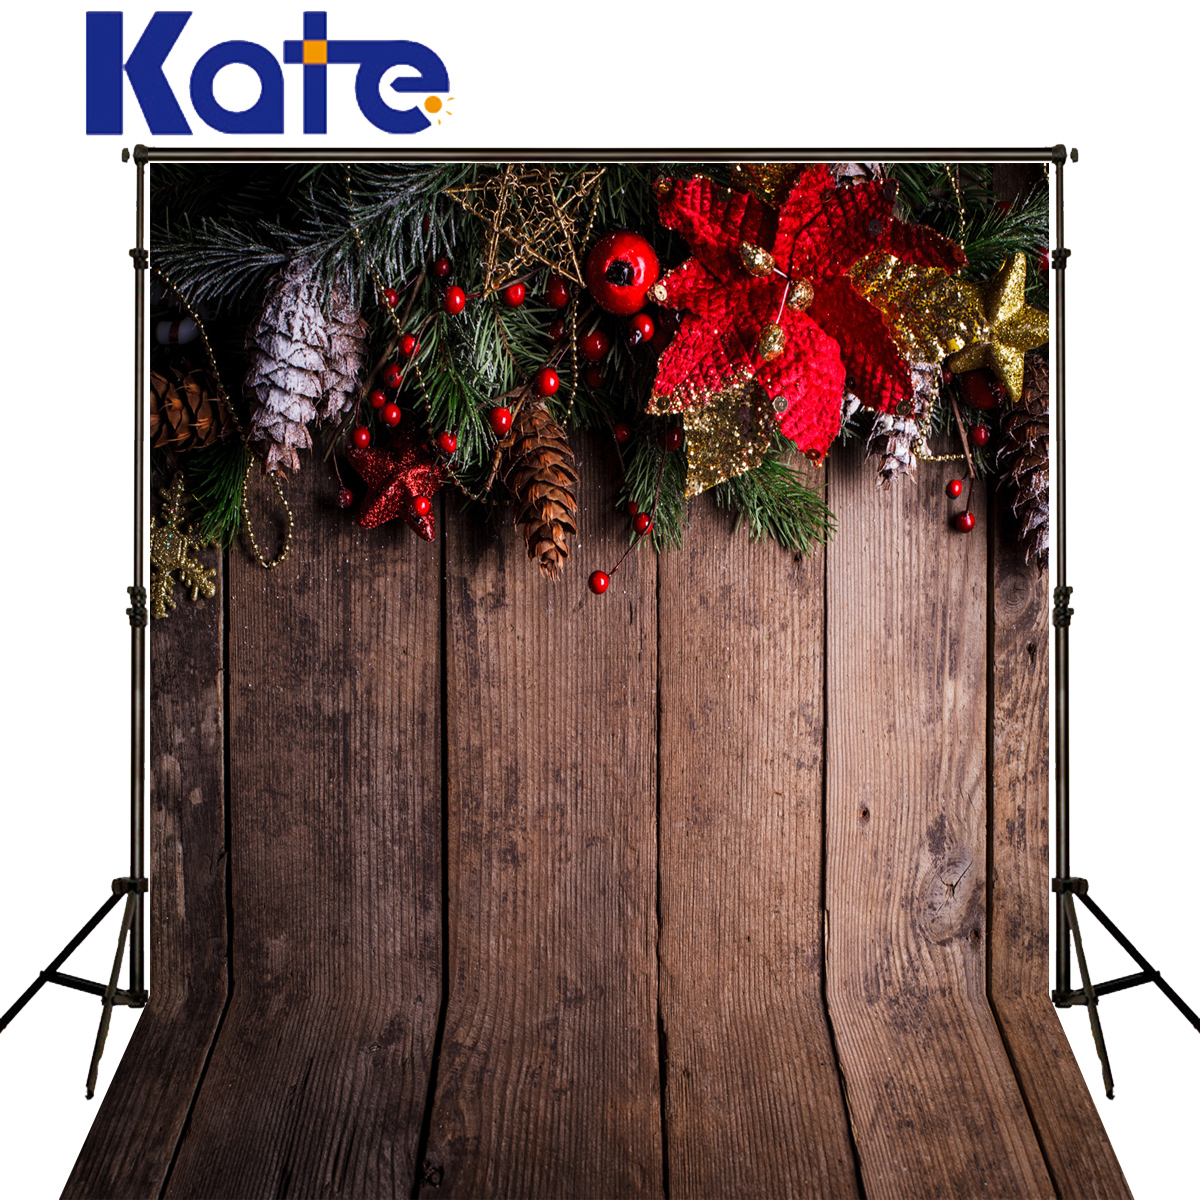 KATE Photo Background Christmas Photography Backdrops Wooden Plank Backdrop Decoracion Navidad Vintage Background for Studio<br>